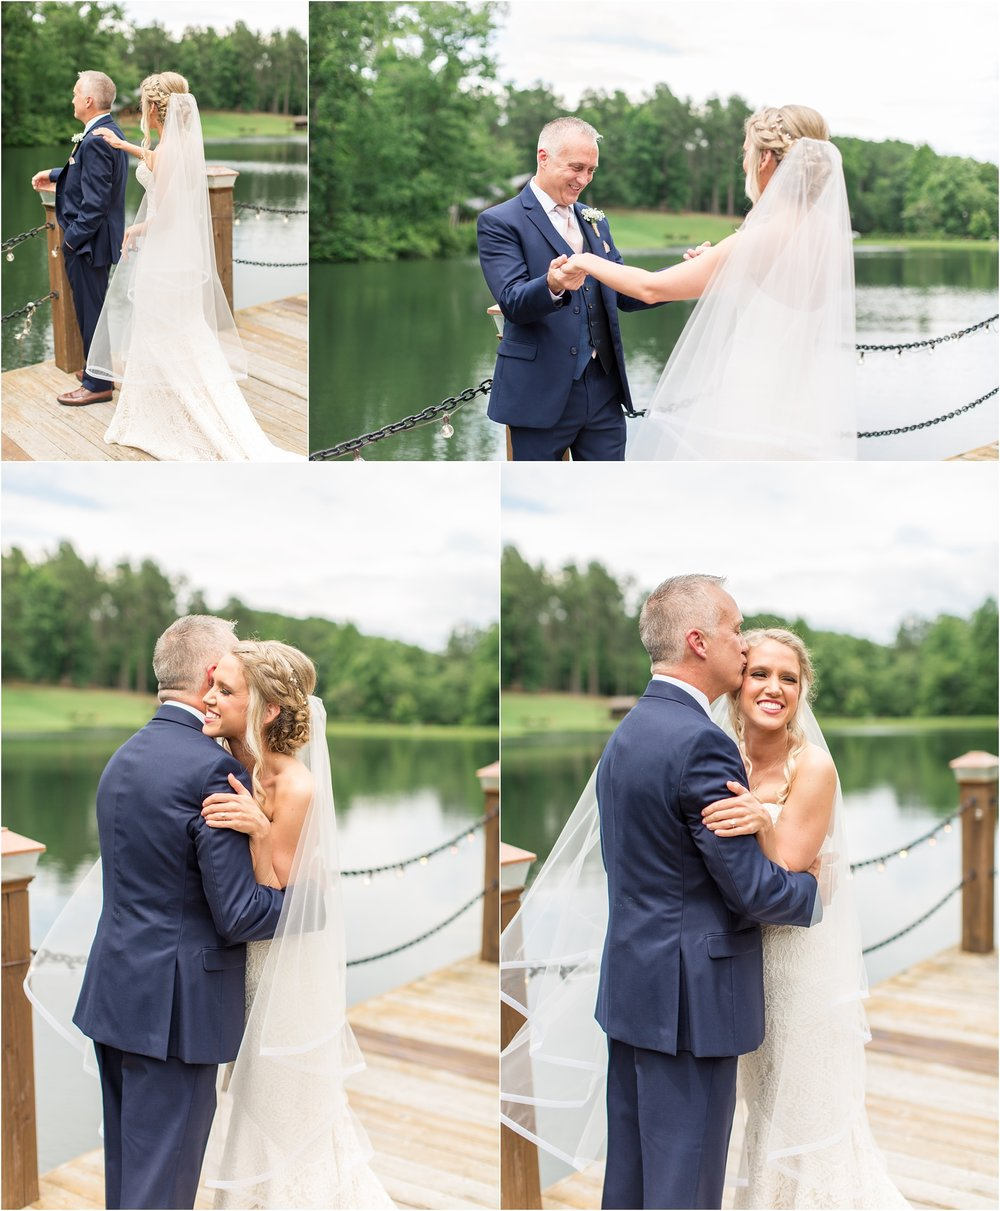 Savannah Eve Photography- Hamlin-Canon Wedding- Sneak Peek-9.jpg